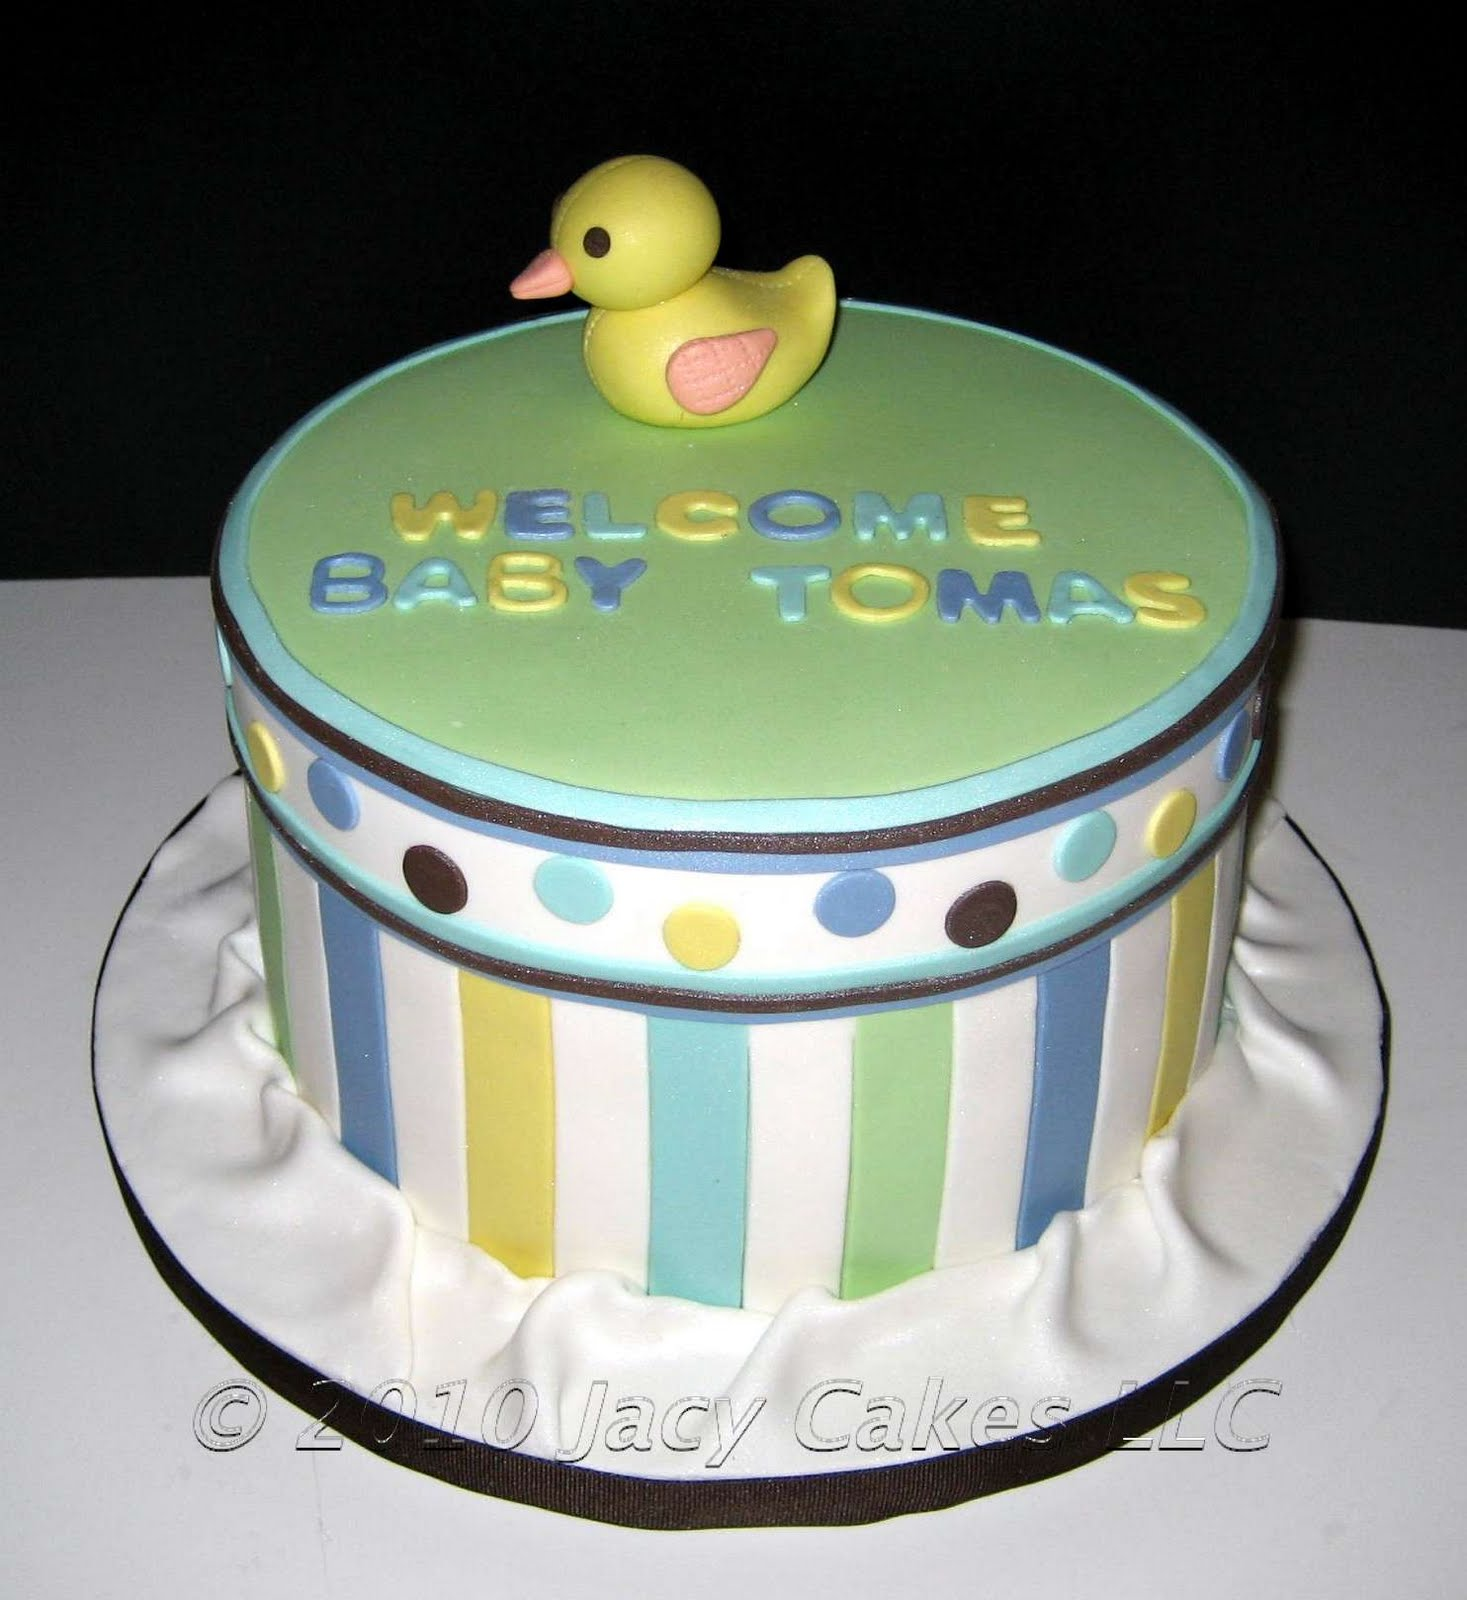 News From Jacy Cakes: Baby Shower Duck Cake